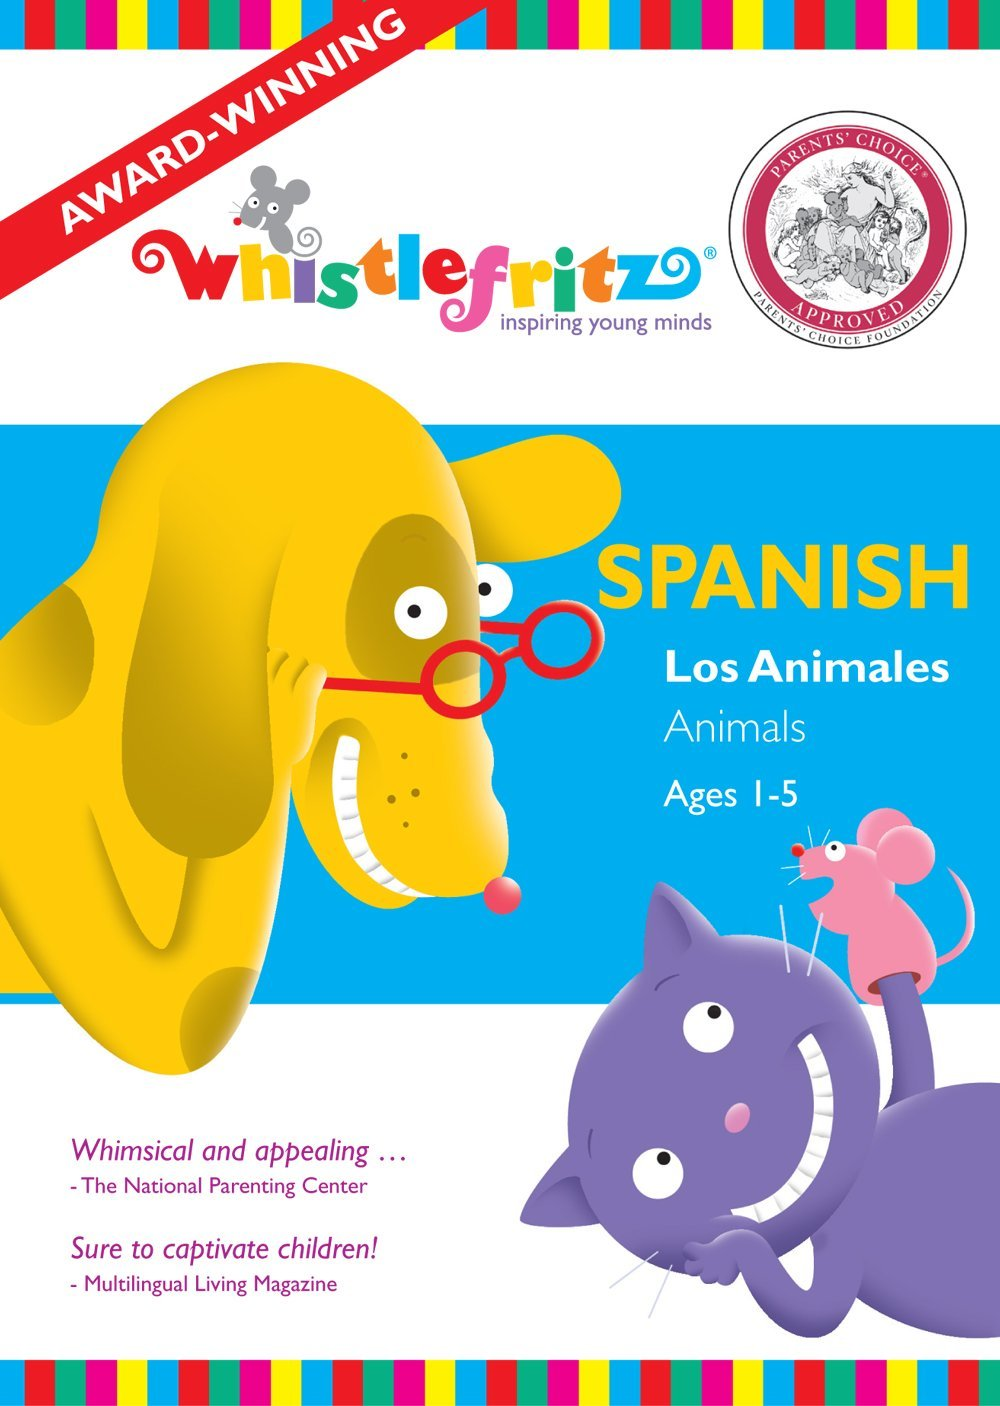 los animales learn spanish